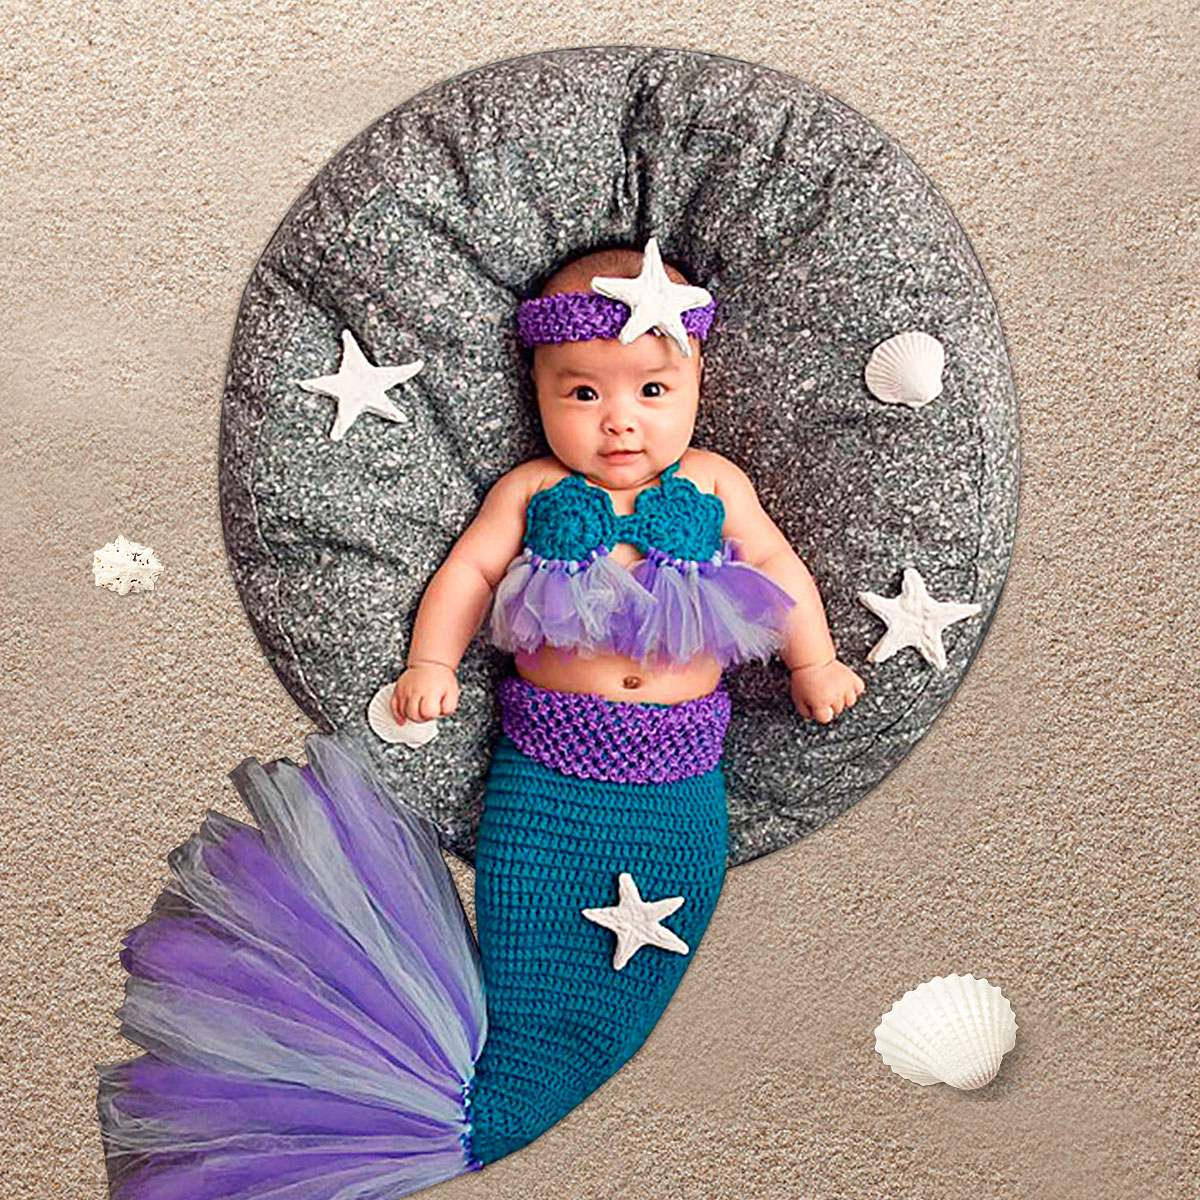 Baby Knitted Photography Props Mermaid Shaped Kids Costume Wrap Photo Props New Born Photography Clothing Accessories Tools